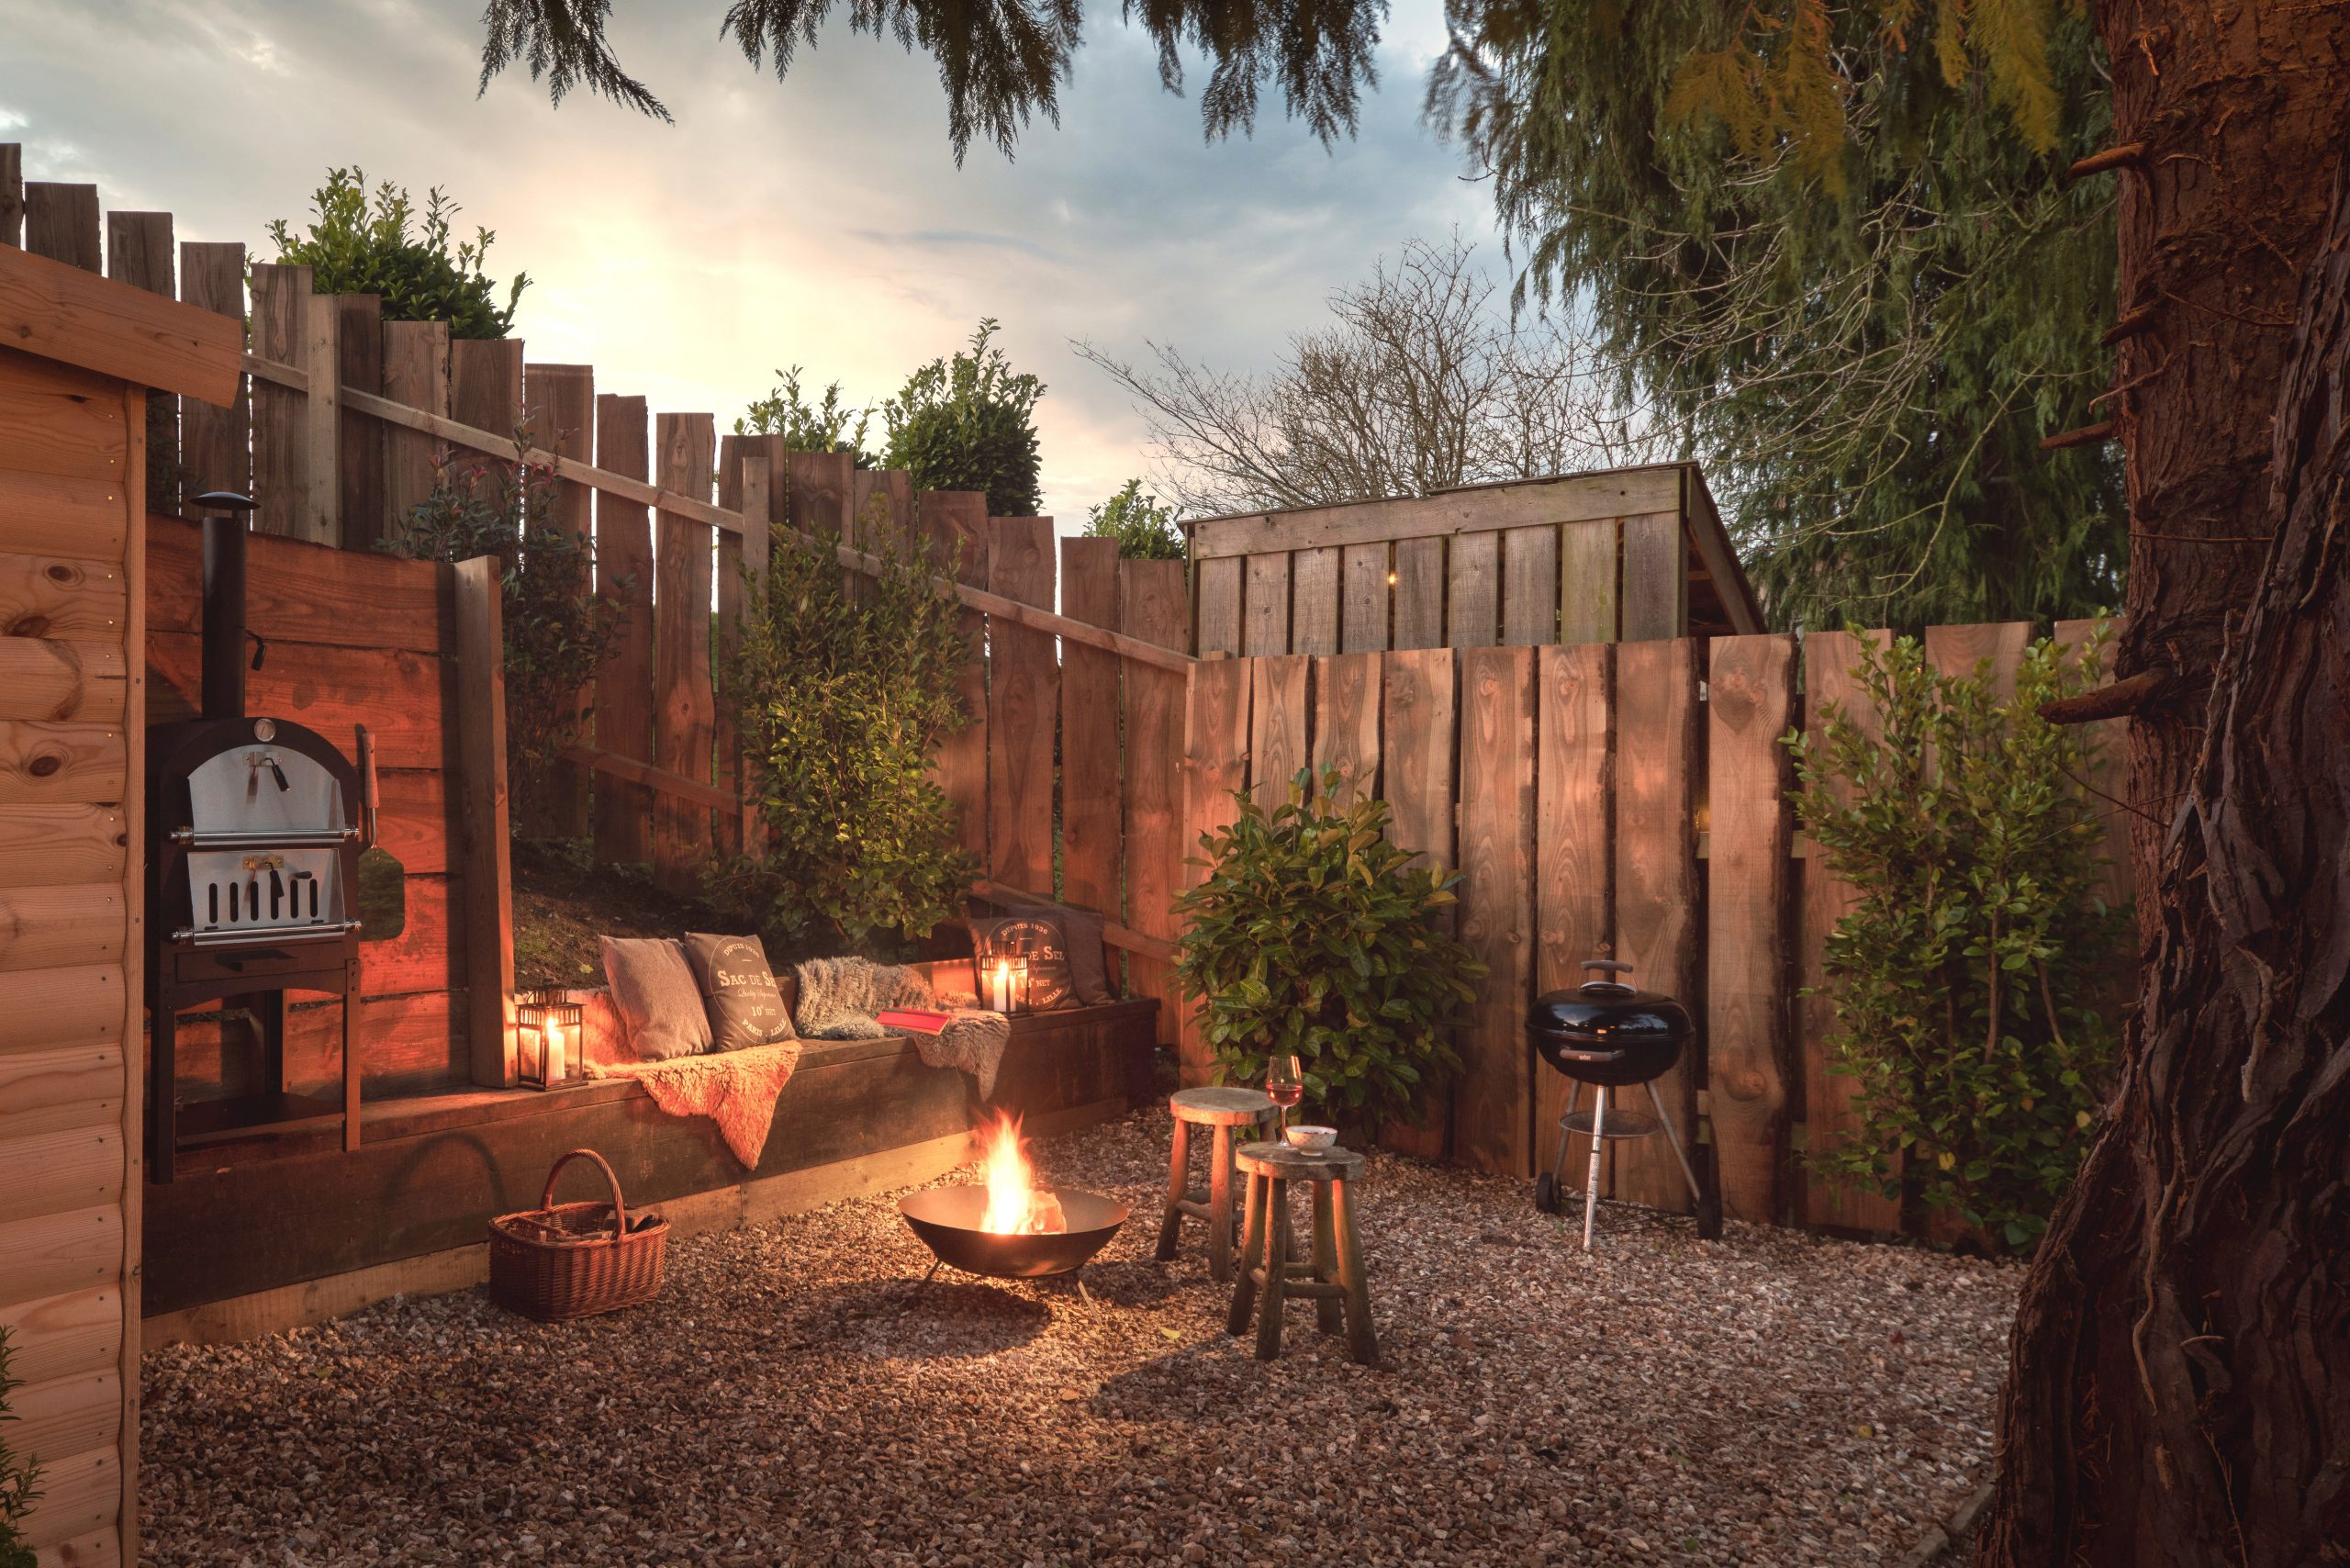 Firepit area at night